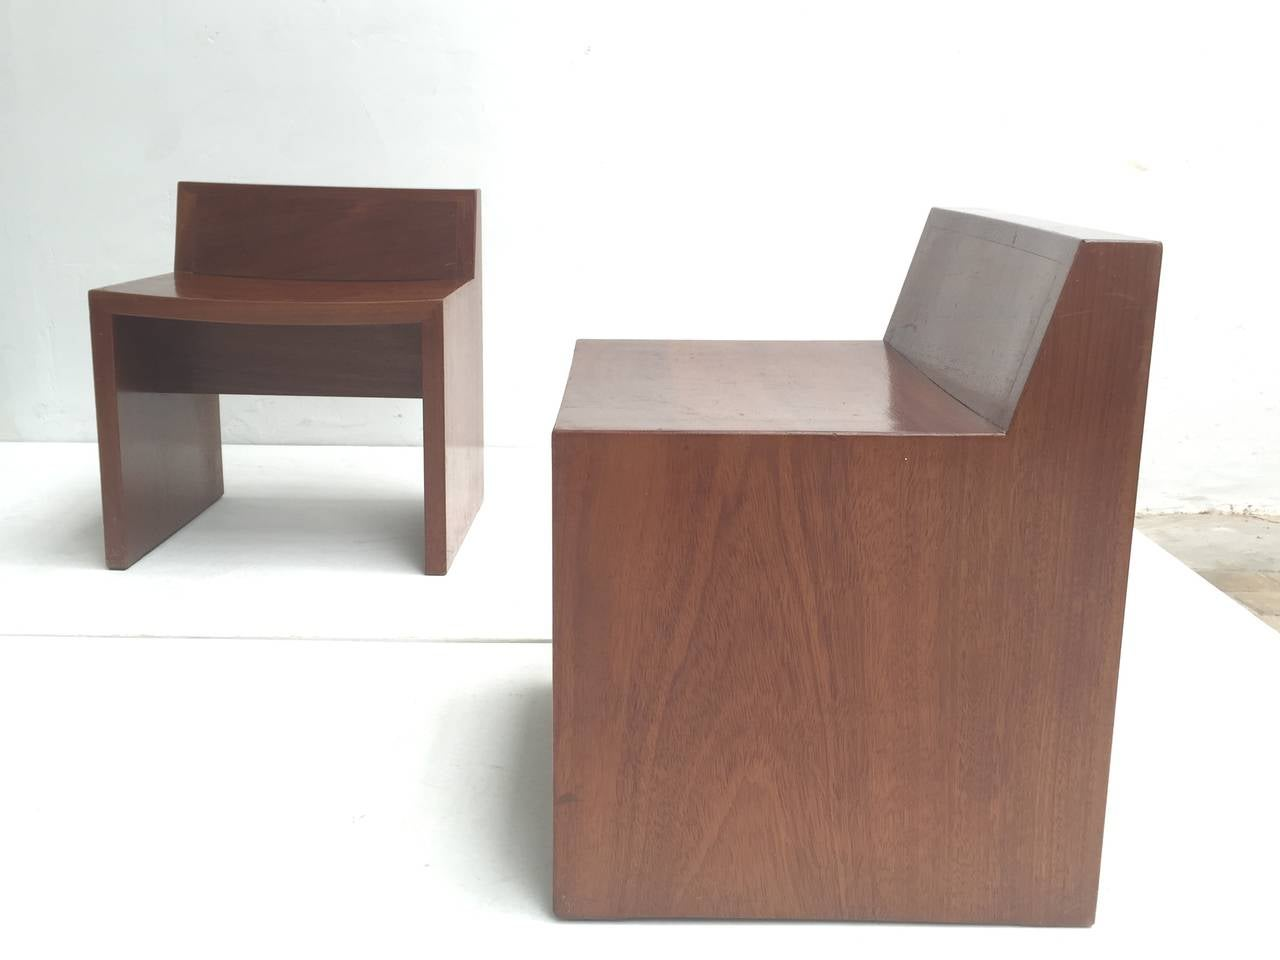 Unique Set of Solid Mahogany Church Seats by Dutch Architect Harry Nefkens, 1963 For Sale 3